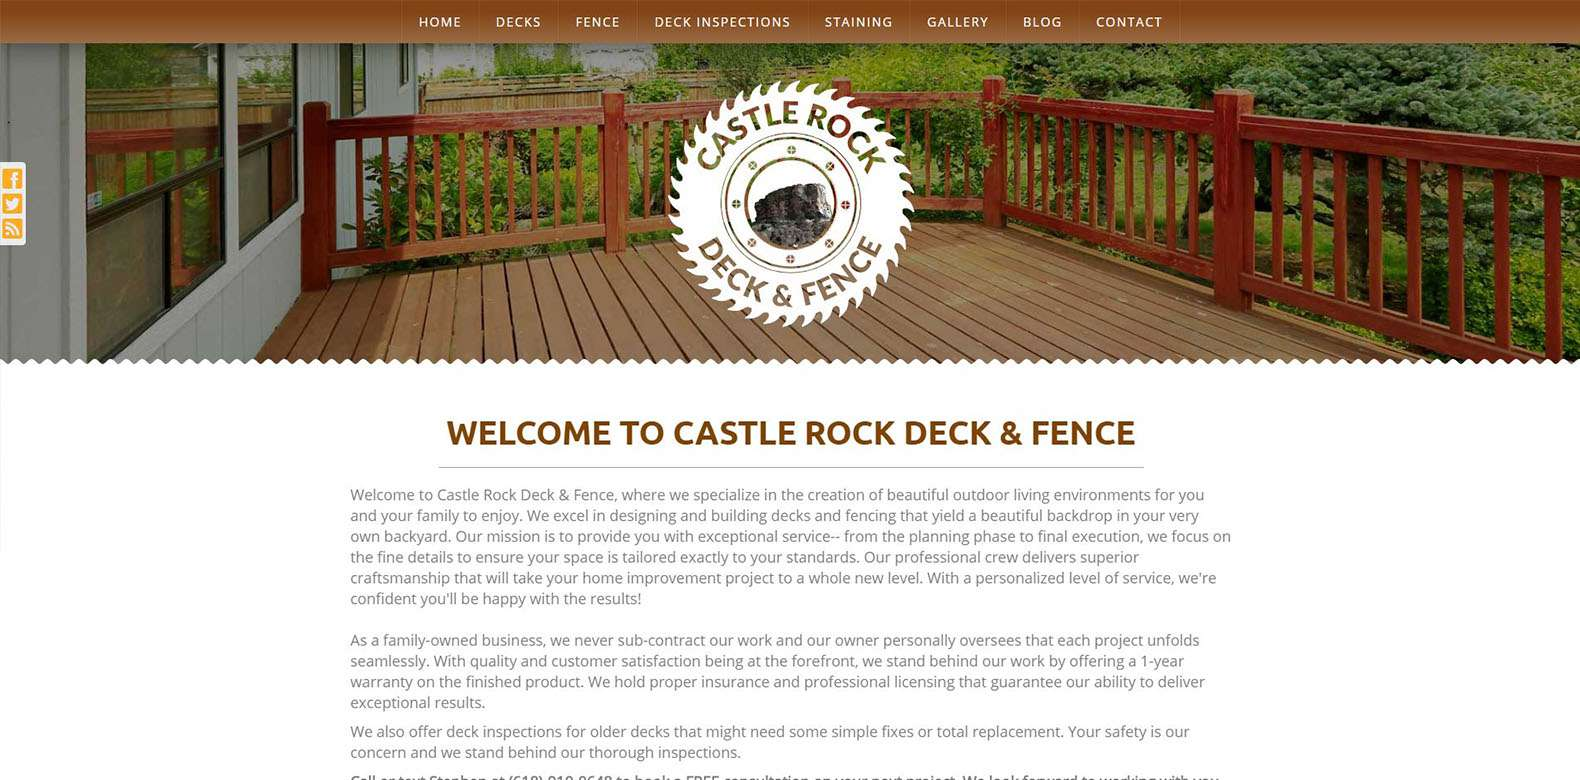 Castle-Rock-Deck-And-Fence-Denver-Website-Designs